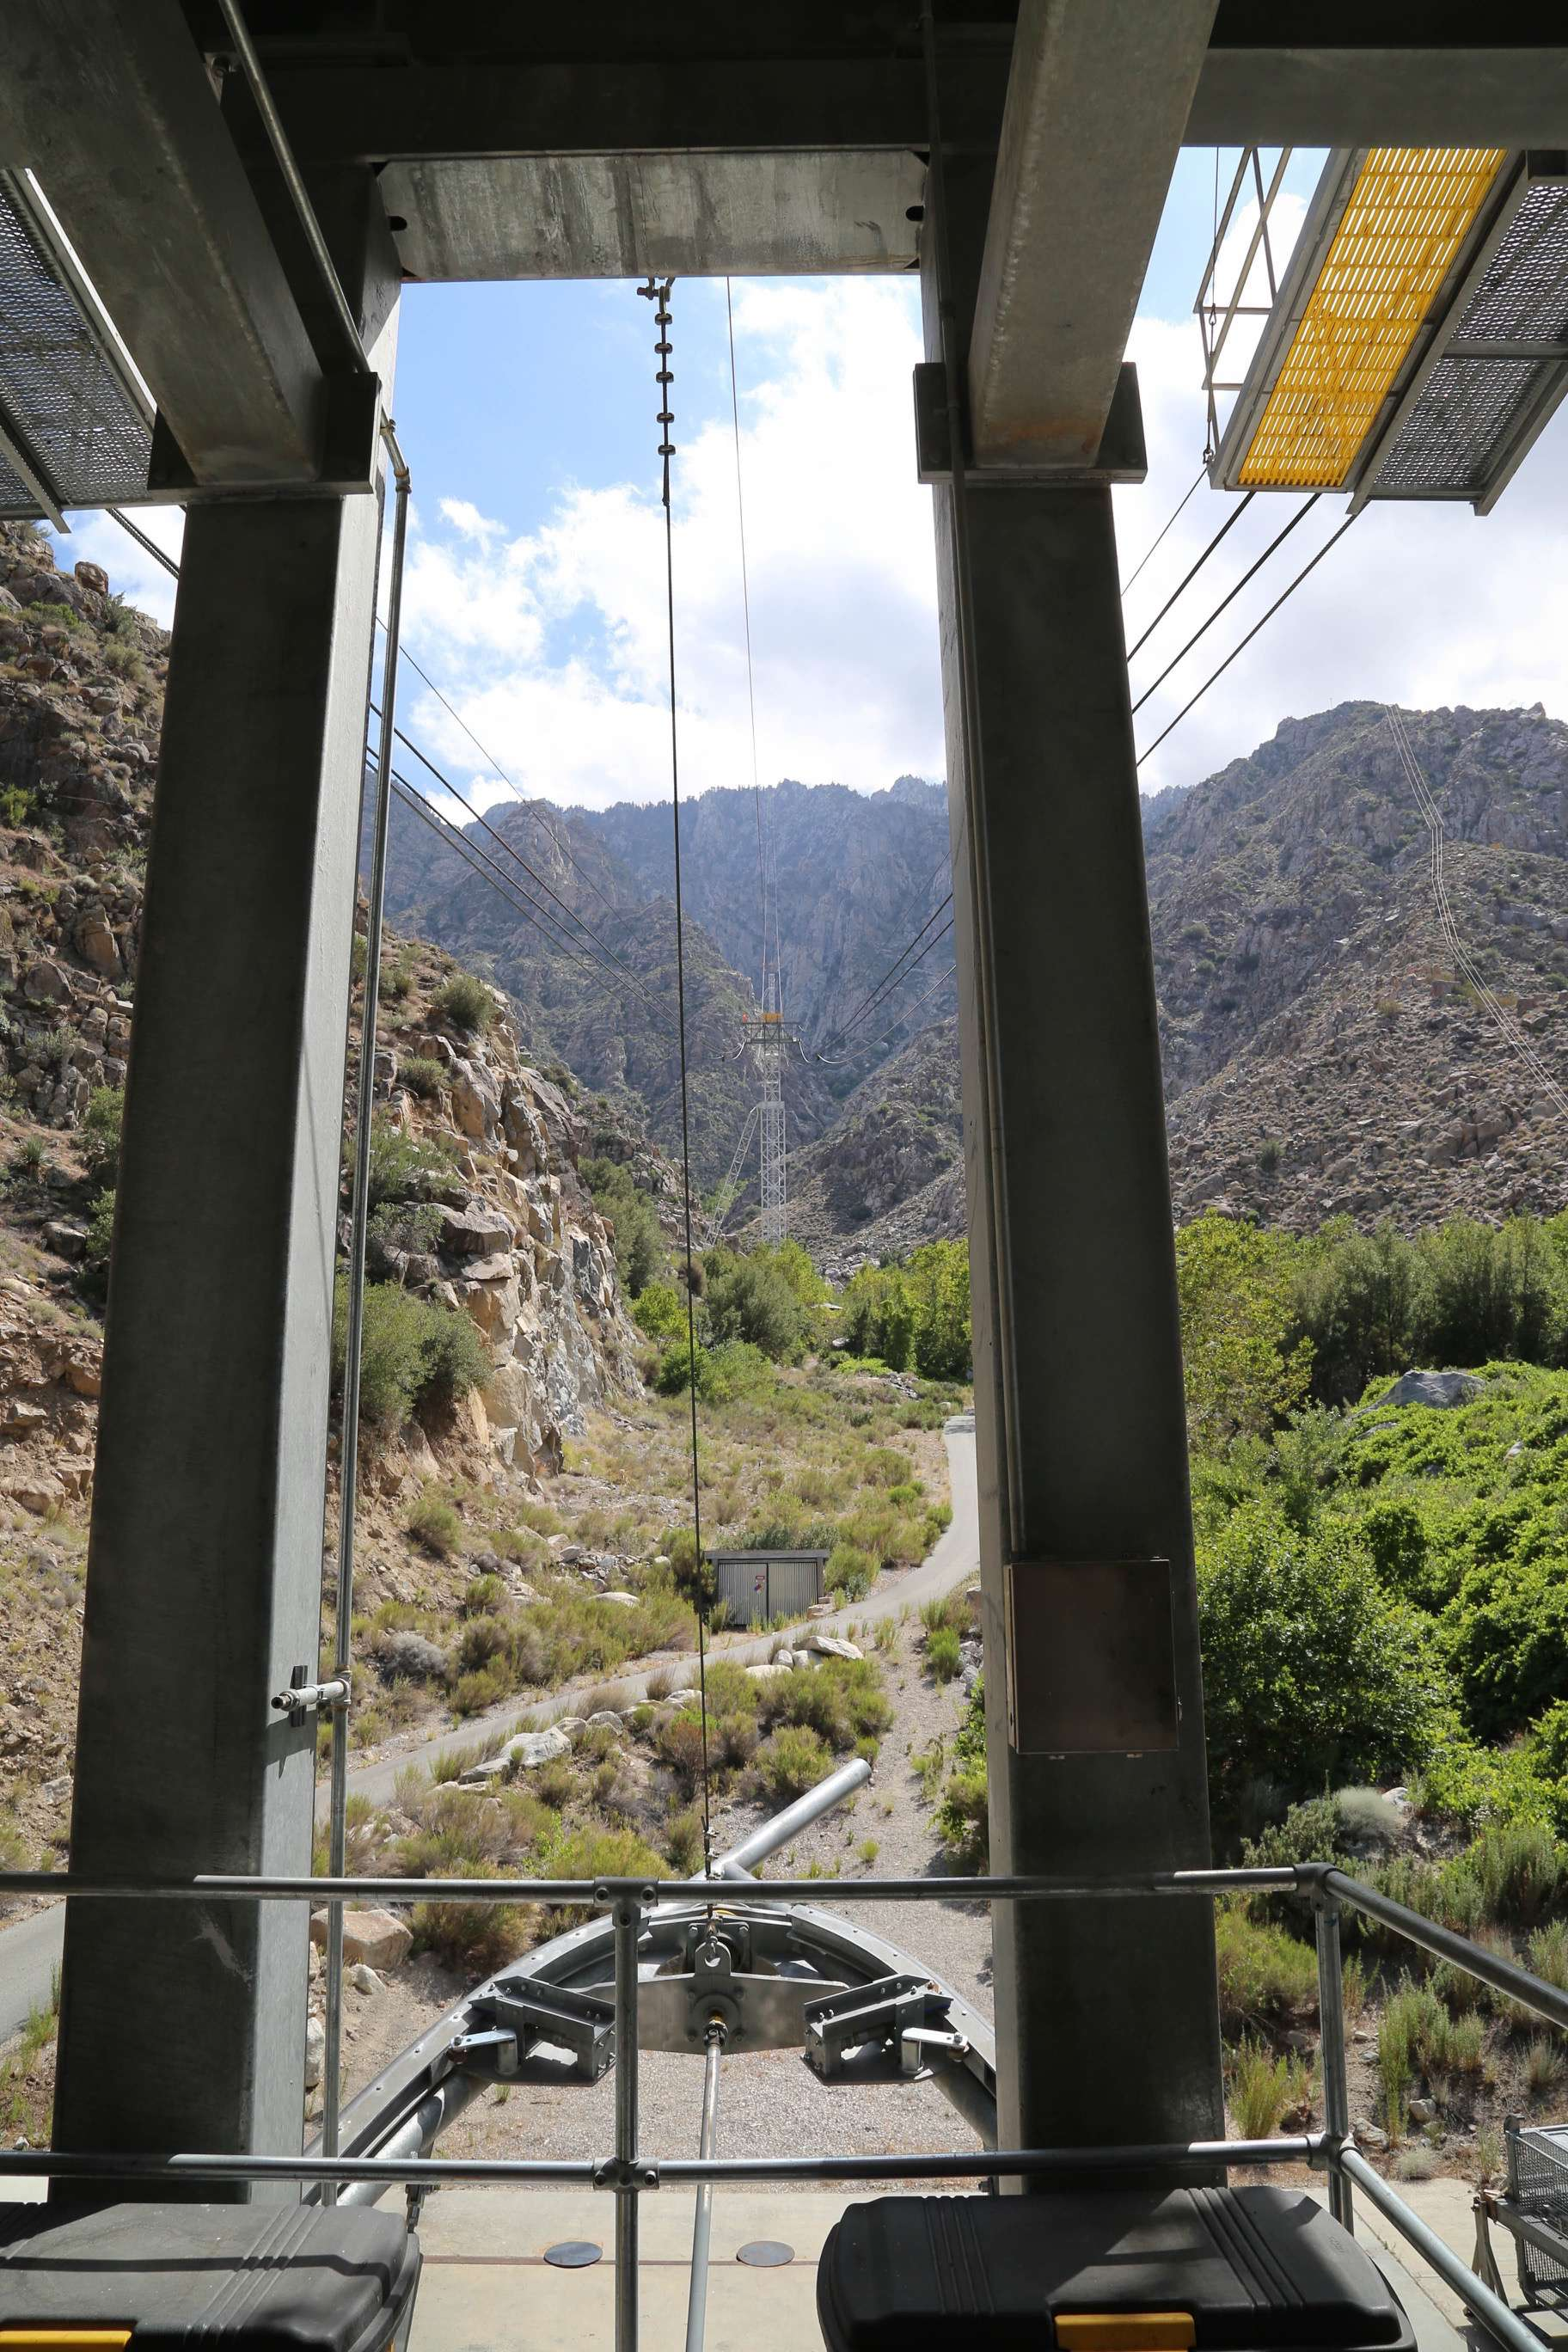 Holding up the massive aerial tramway cars is a high grade steel cable that is more than 1.5 inches in diameter.